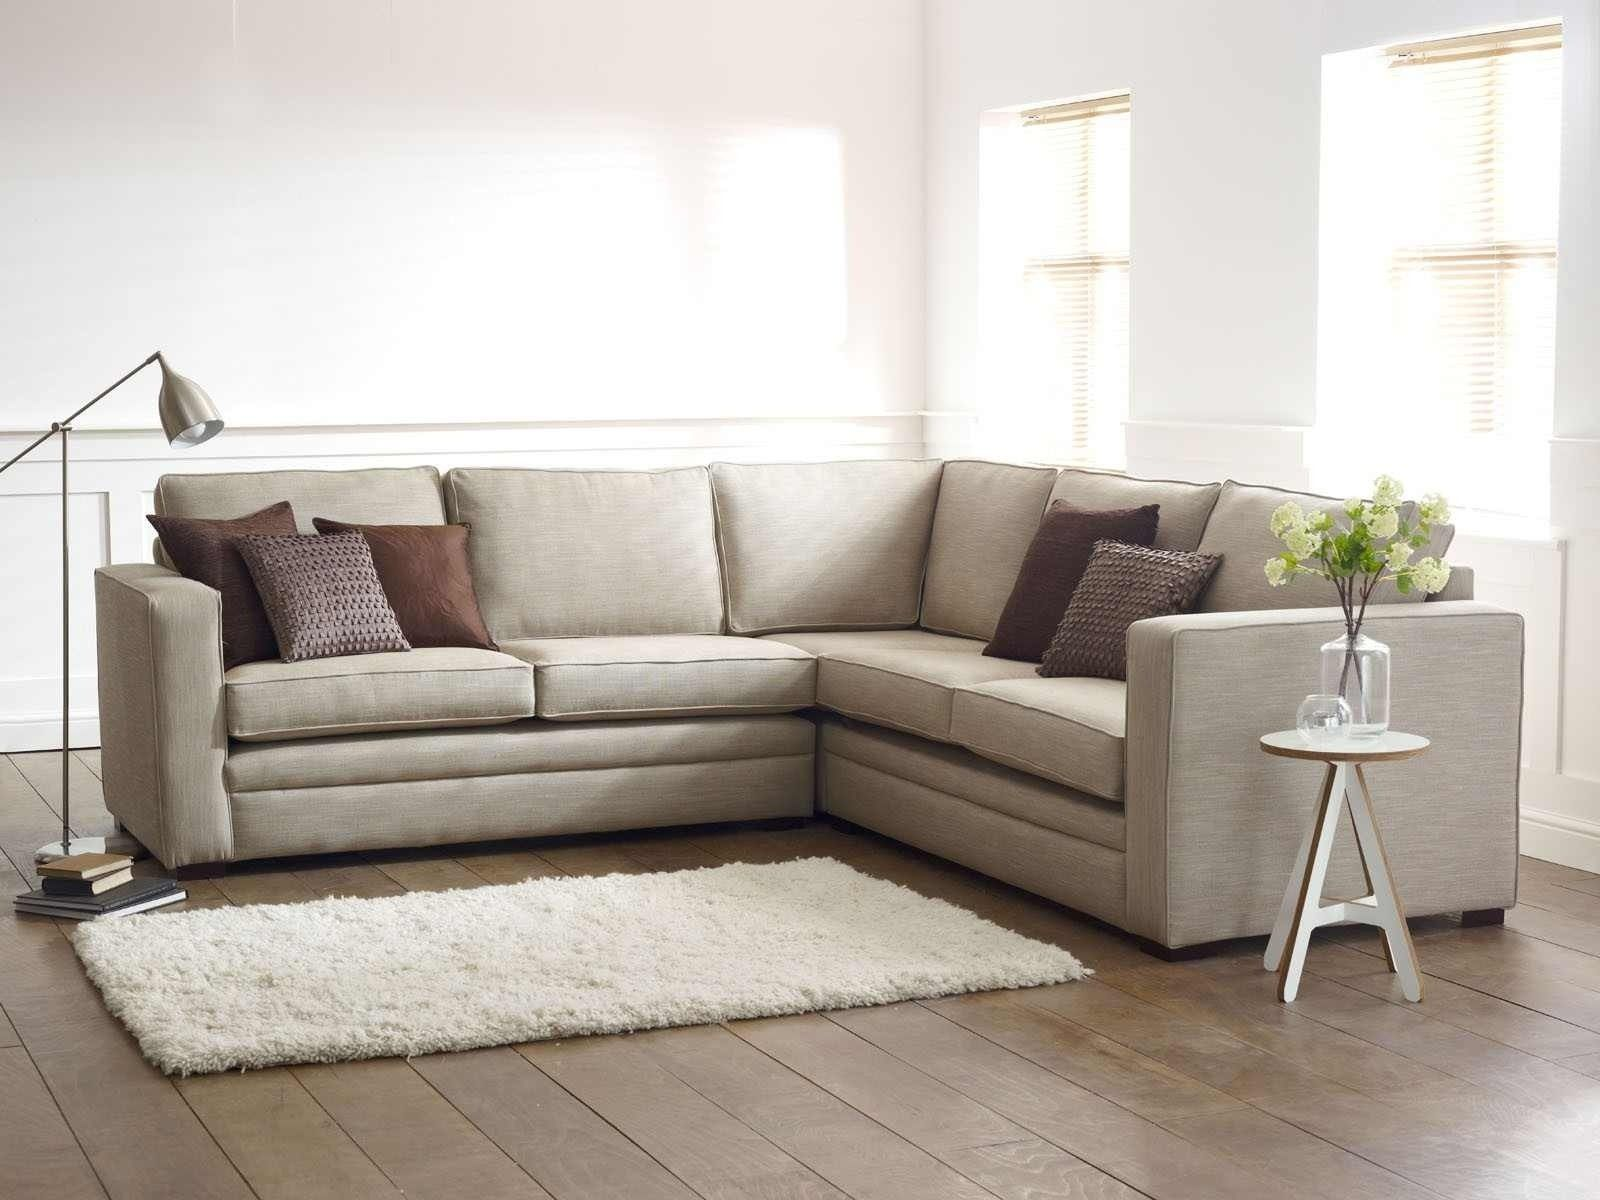 Beautiful Sectional Sofas For Living Room Furniture Ideas Khaki Plus Rug